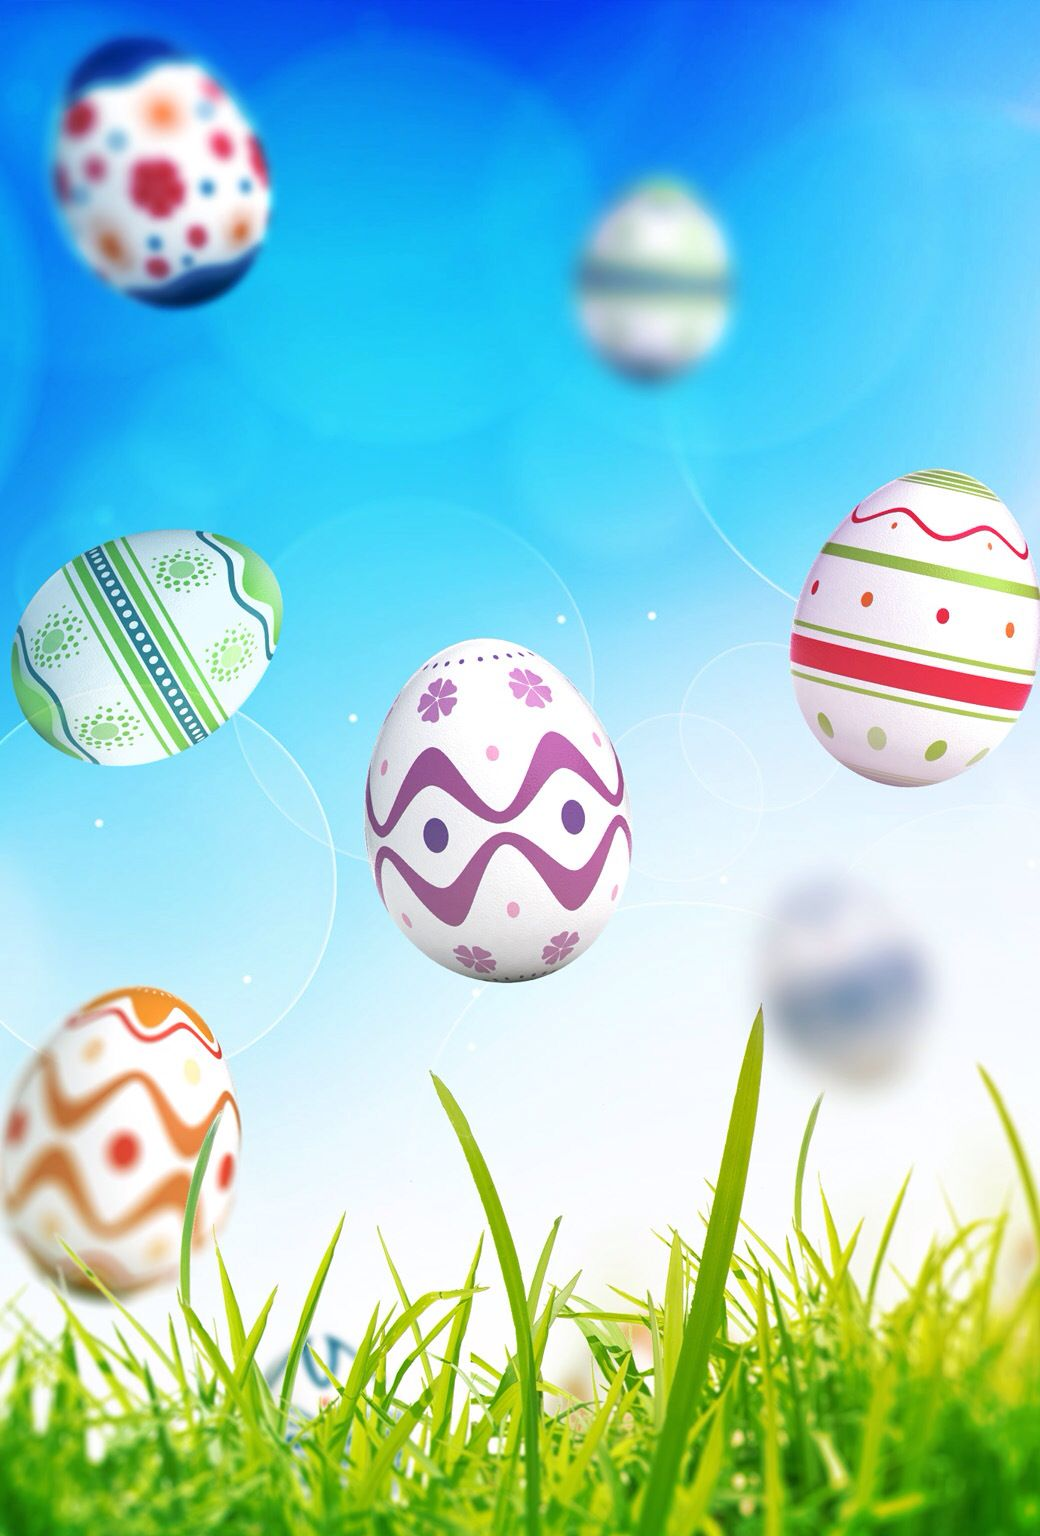 Cool background Iphone wallpaper easter